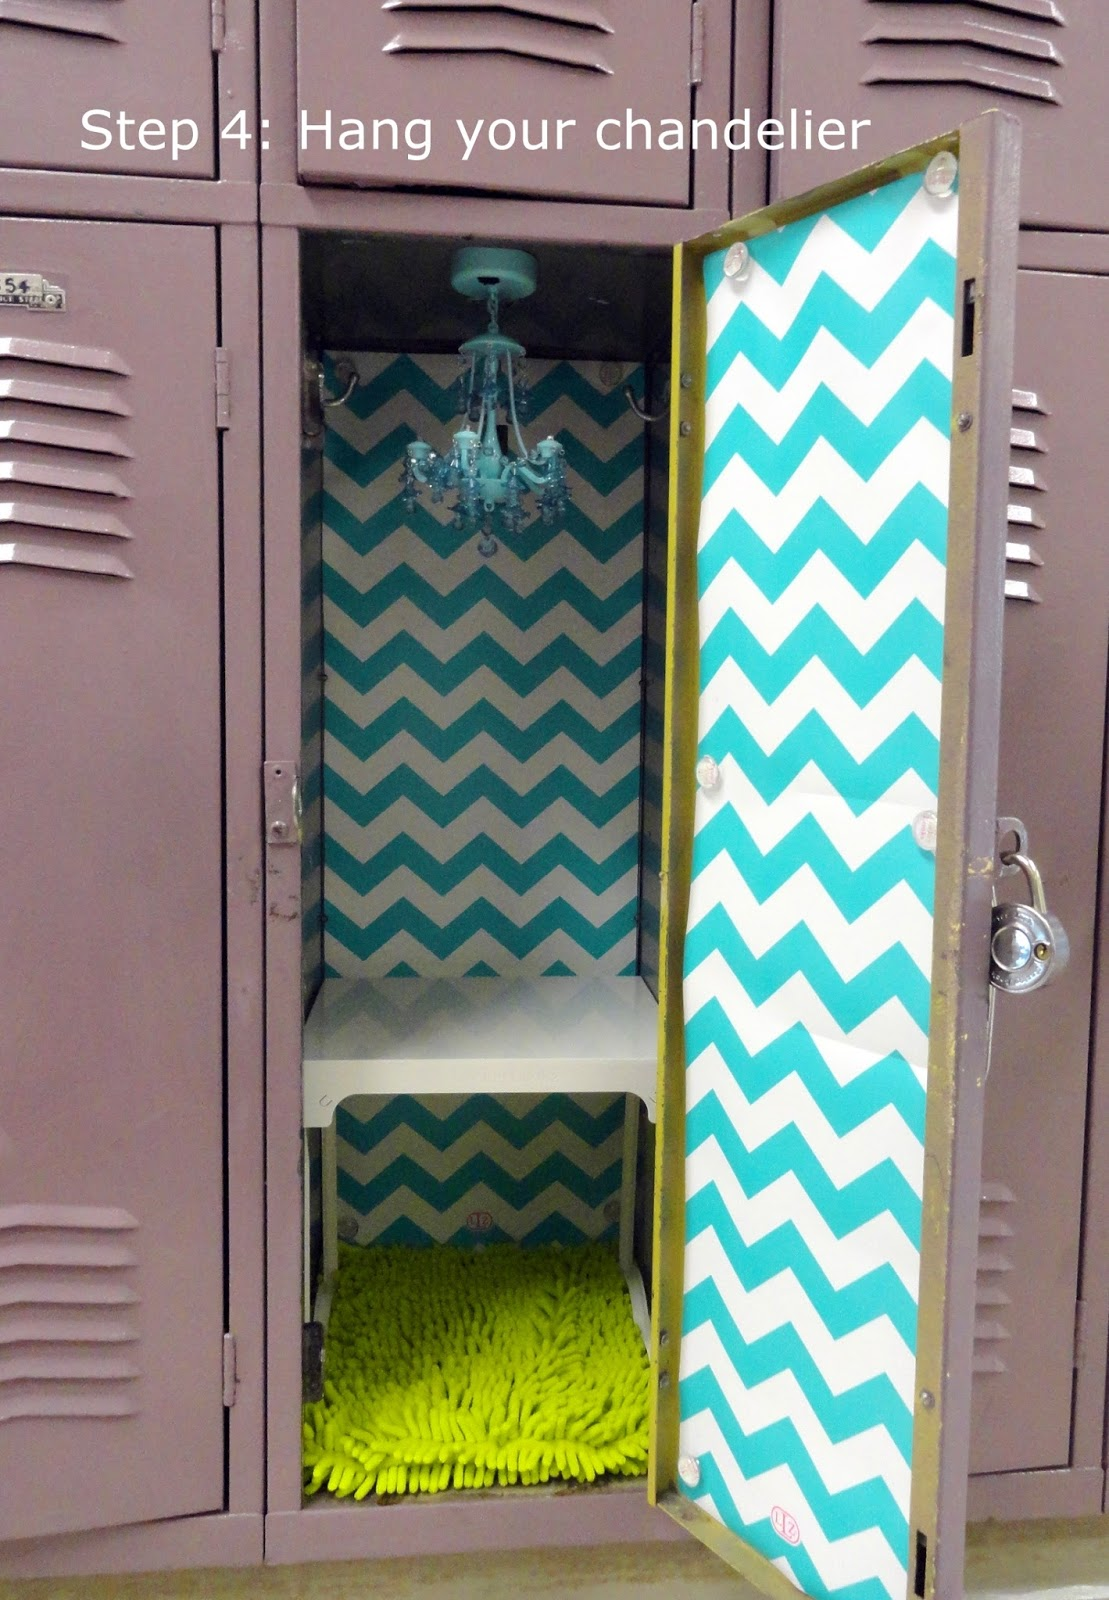 5 simple steps to decorating a fabulous locker with locker lookz it even has a motion sensor so it turns on and off when you open and close your locker aloadofball Image collections